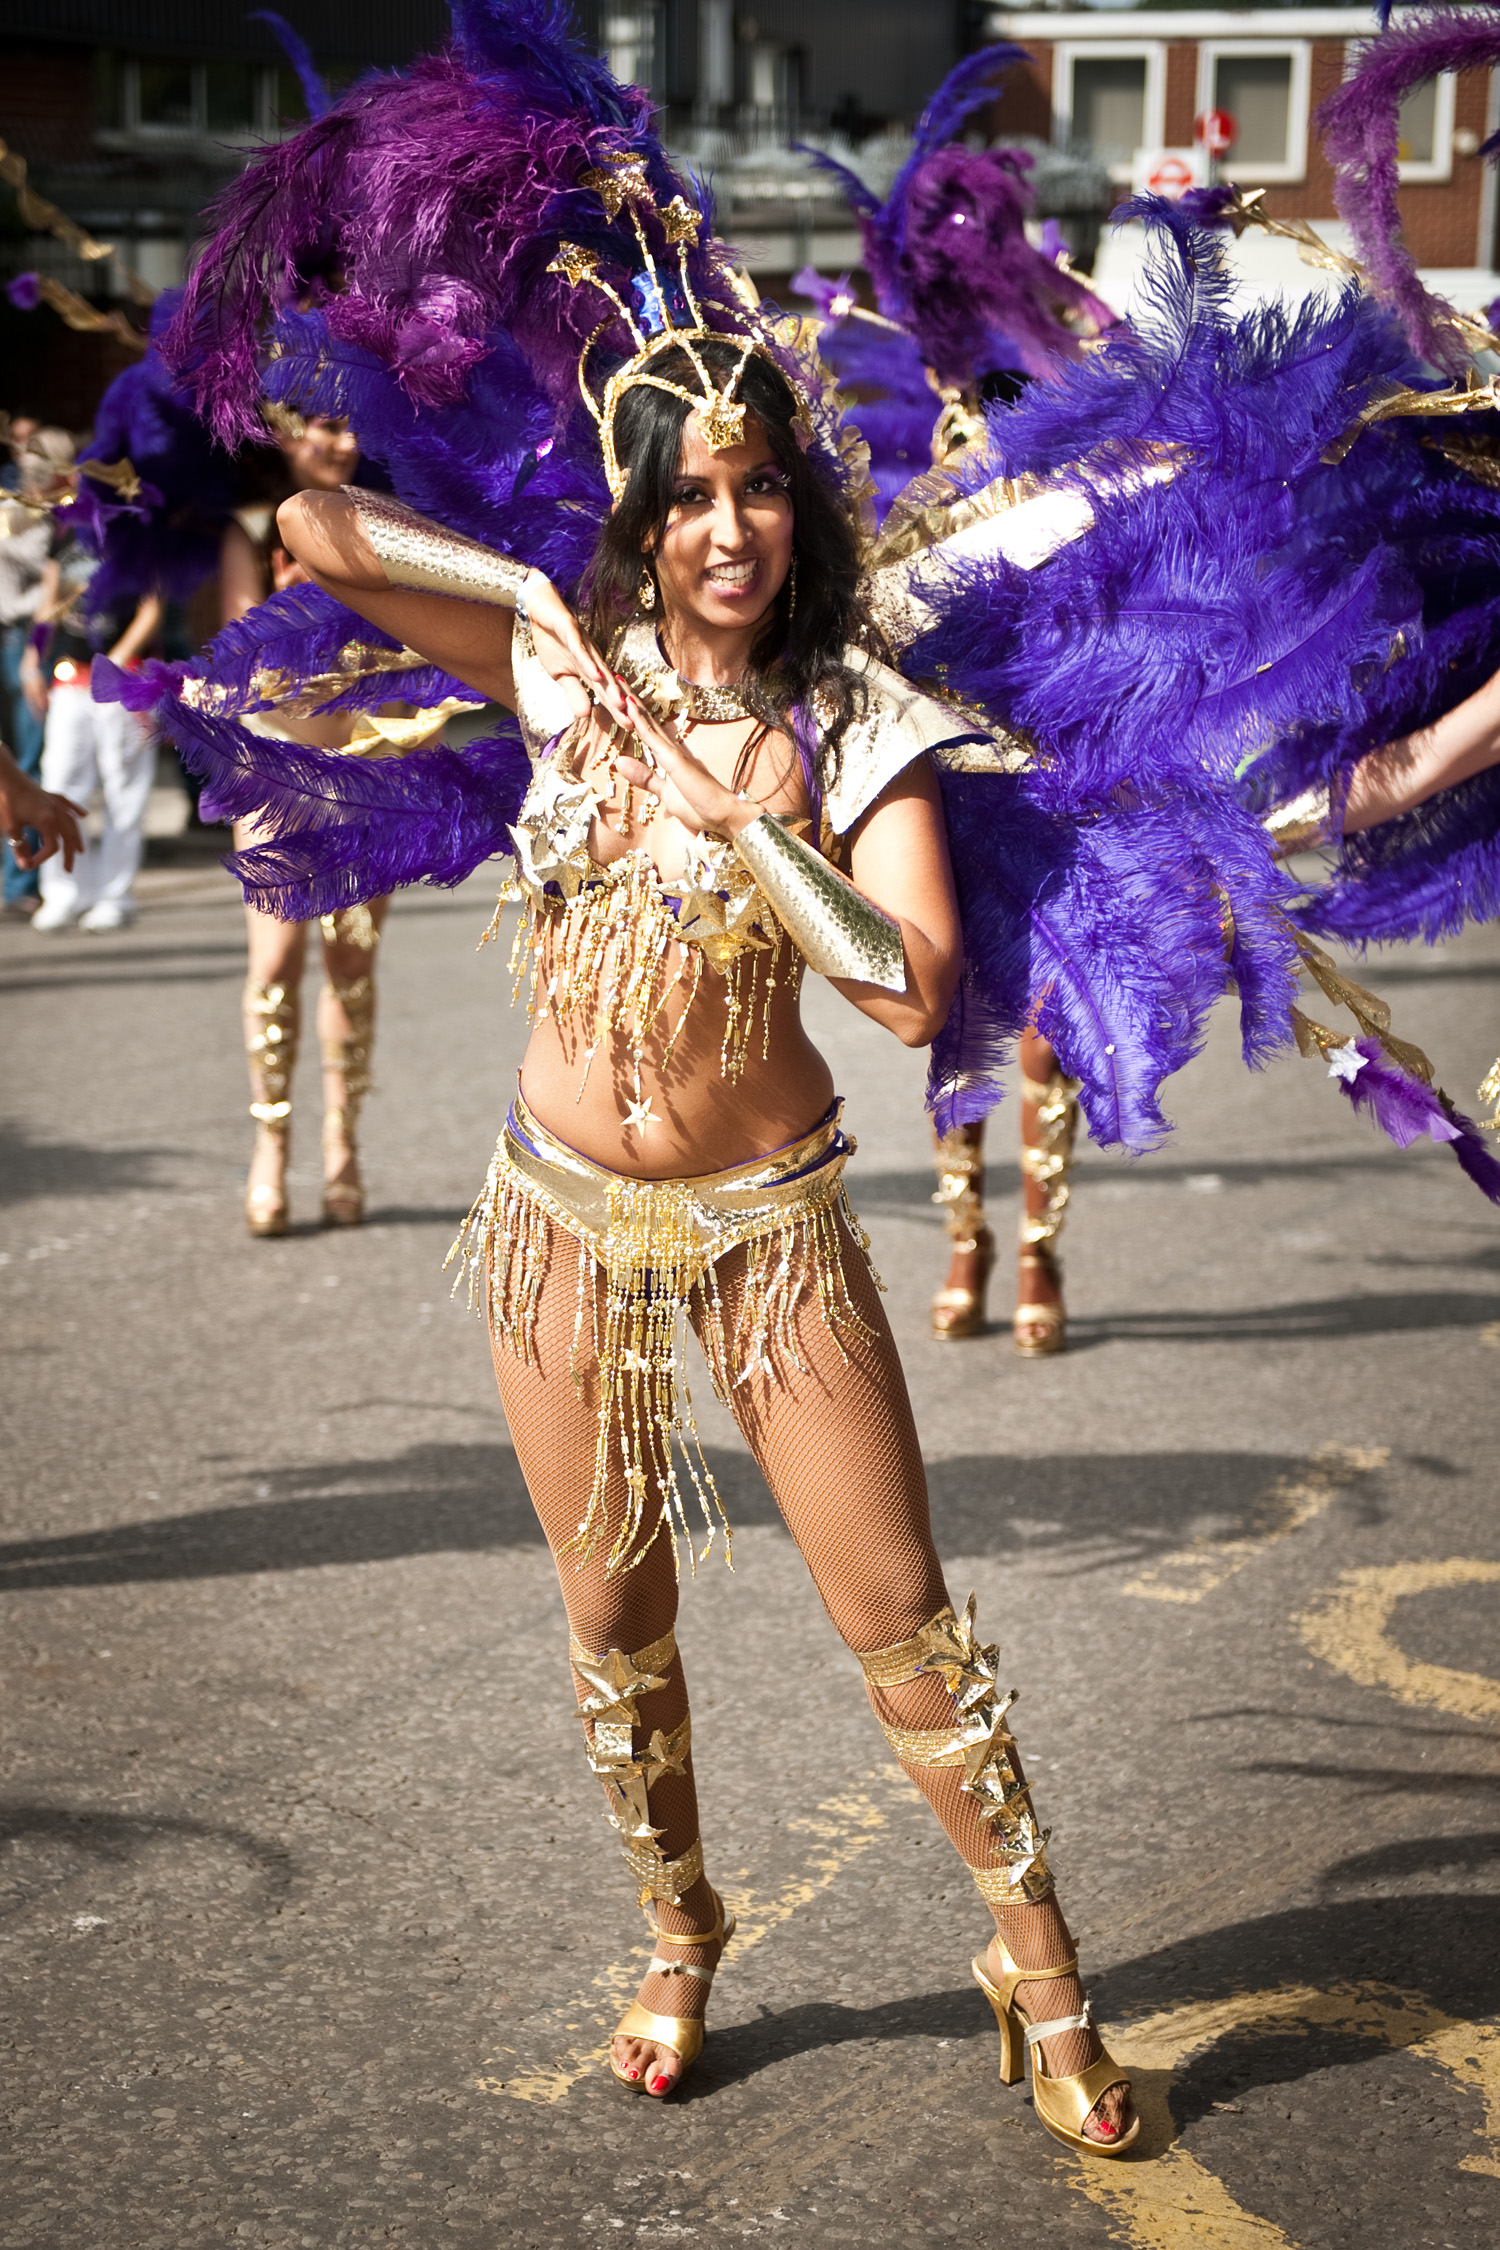 Carnival_the_rest_04